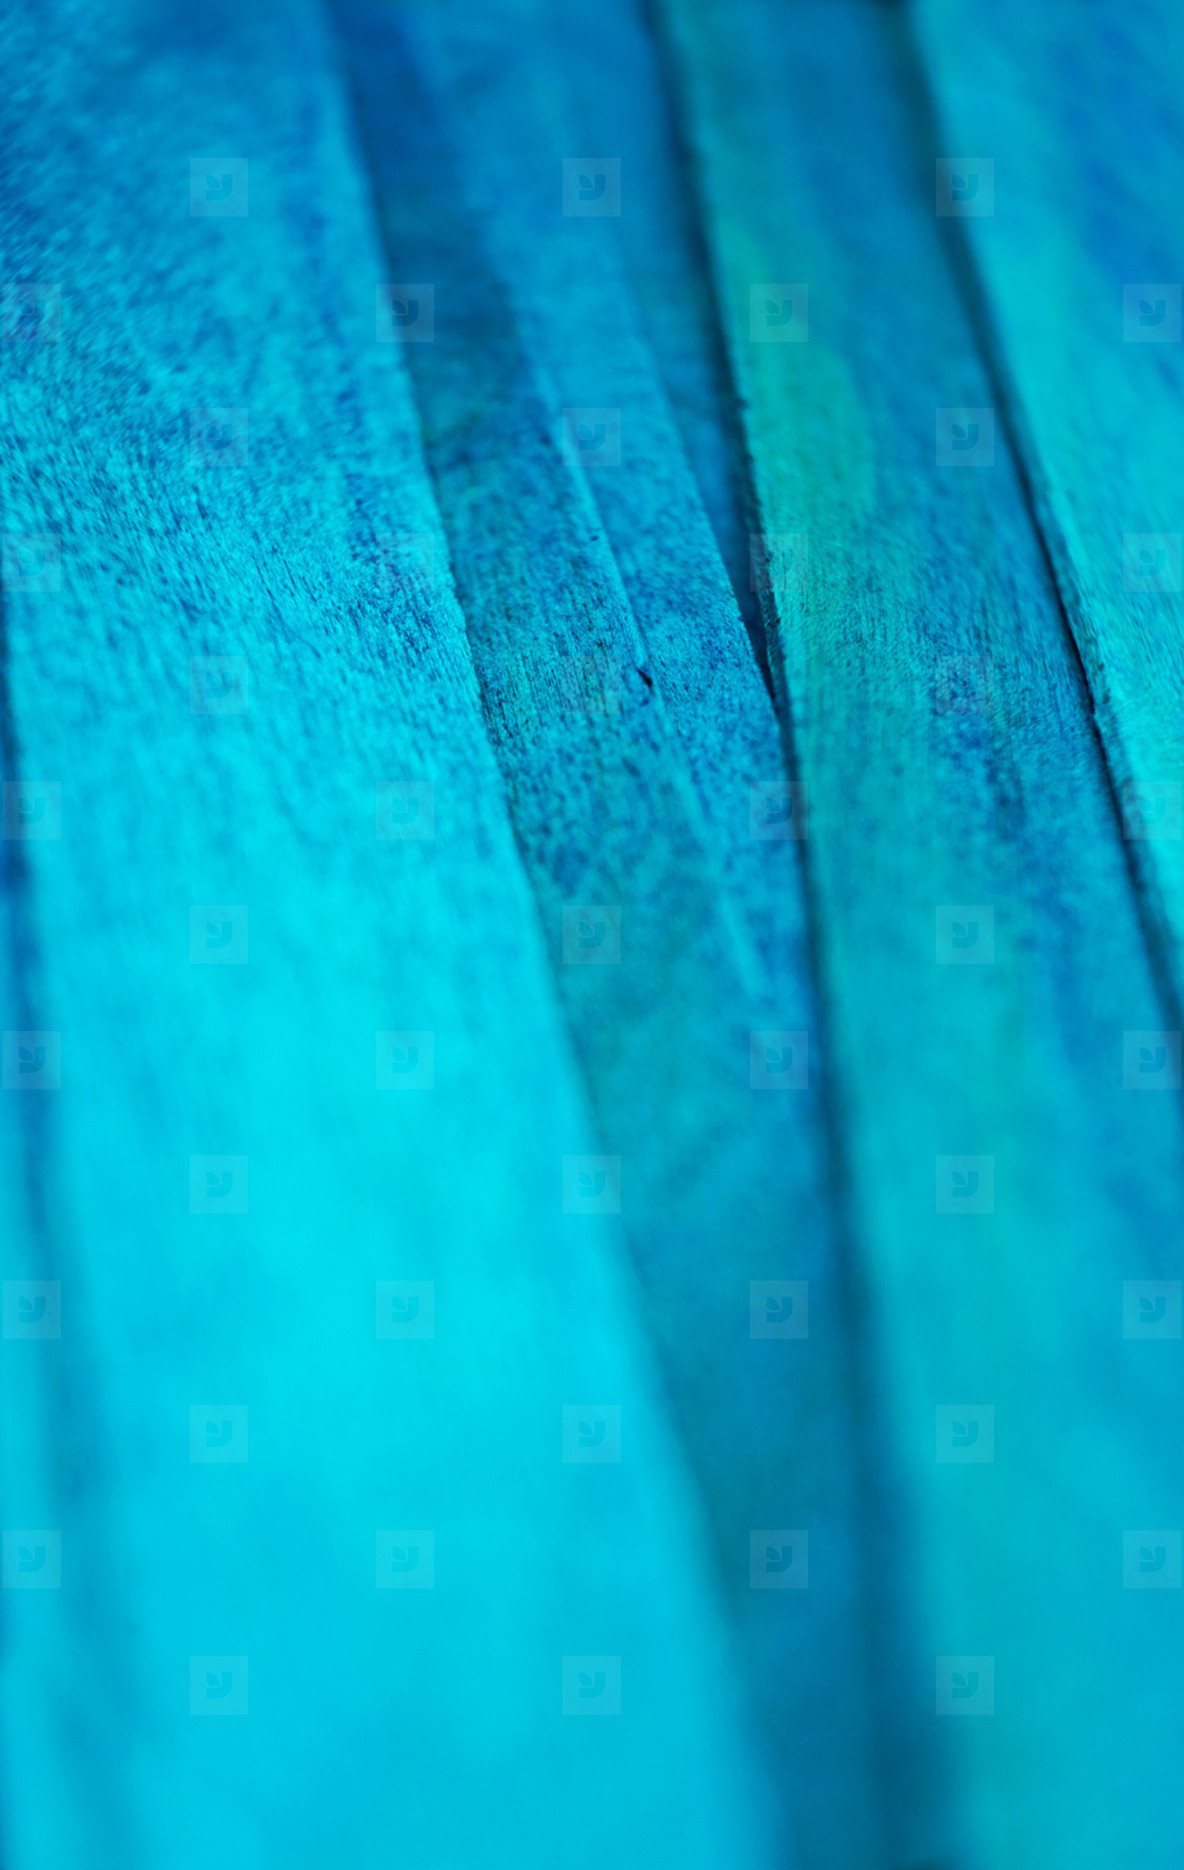 Blue abstract wooden background